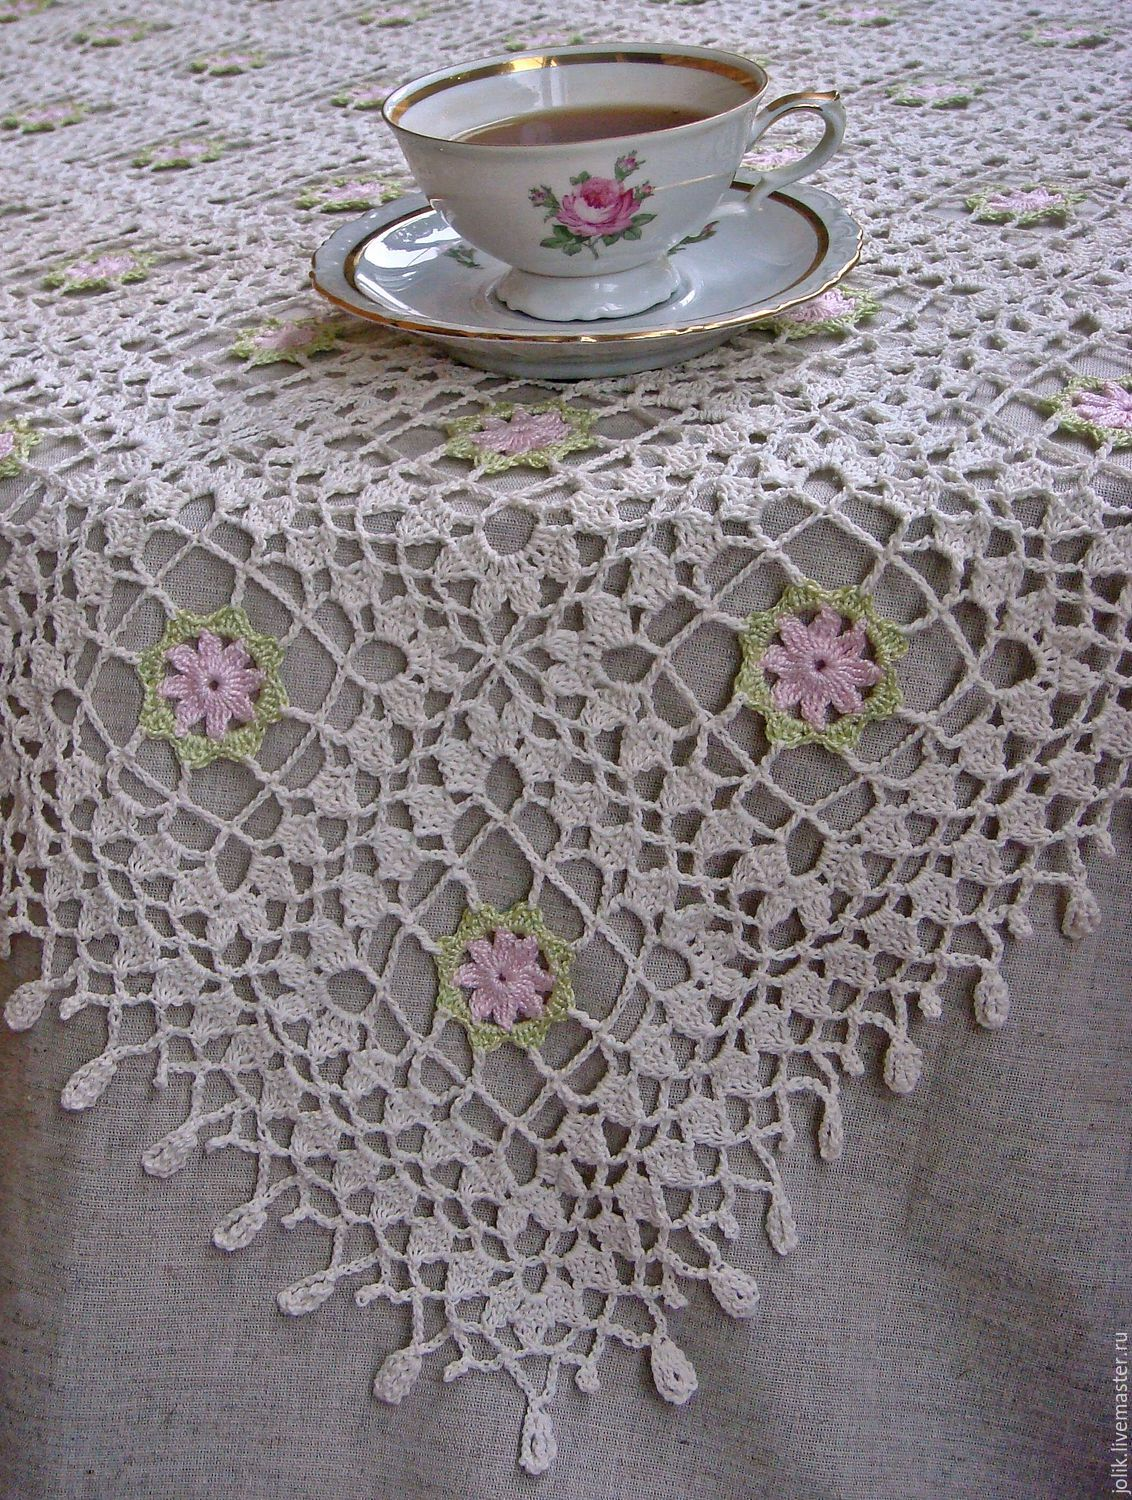 ... Tablecloth Crochet `Shabby Chic` Tablecloth Square Tablecloth Crochet  Beautiful Tablecloth A Wedding Giftbuy Tablecloth ...